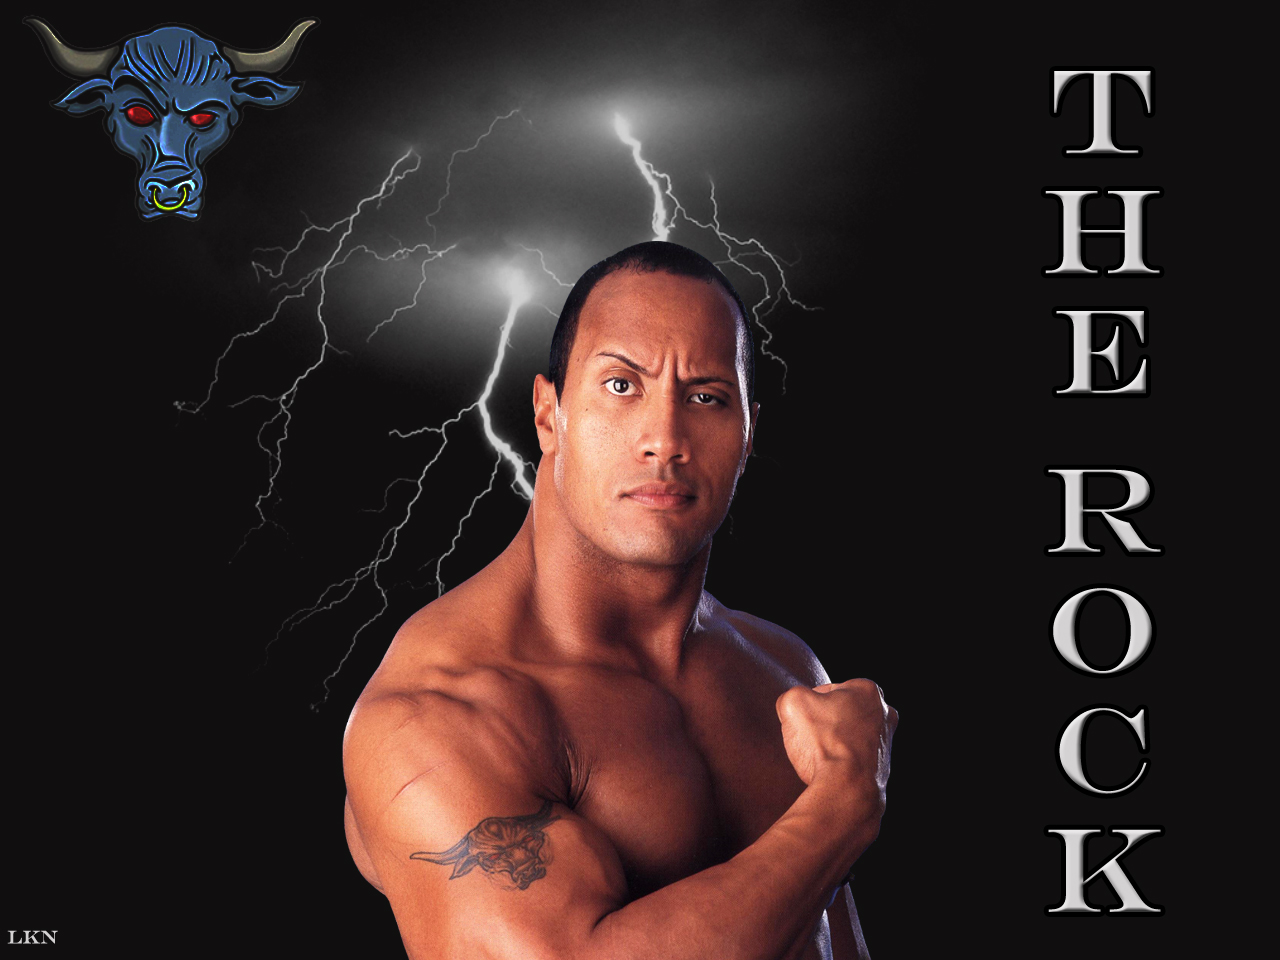 Images Of The Rock Wwe: WWE Wallpapers: The Rock Wallpapers